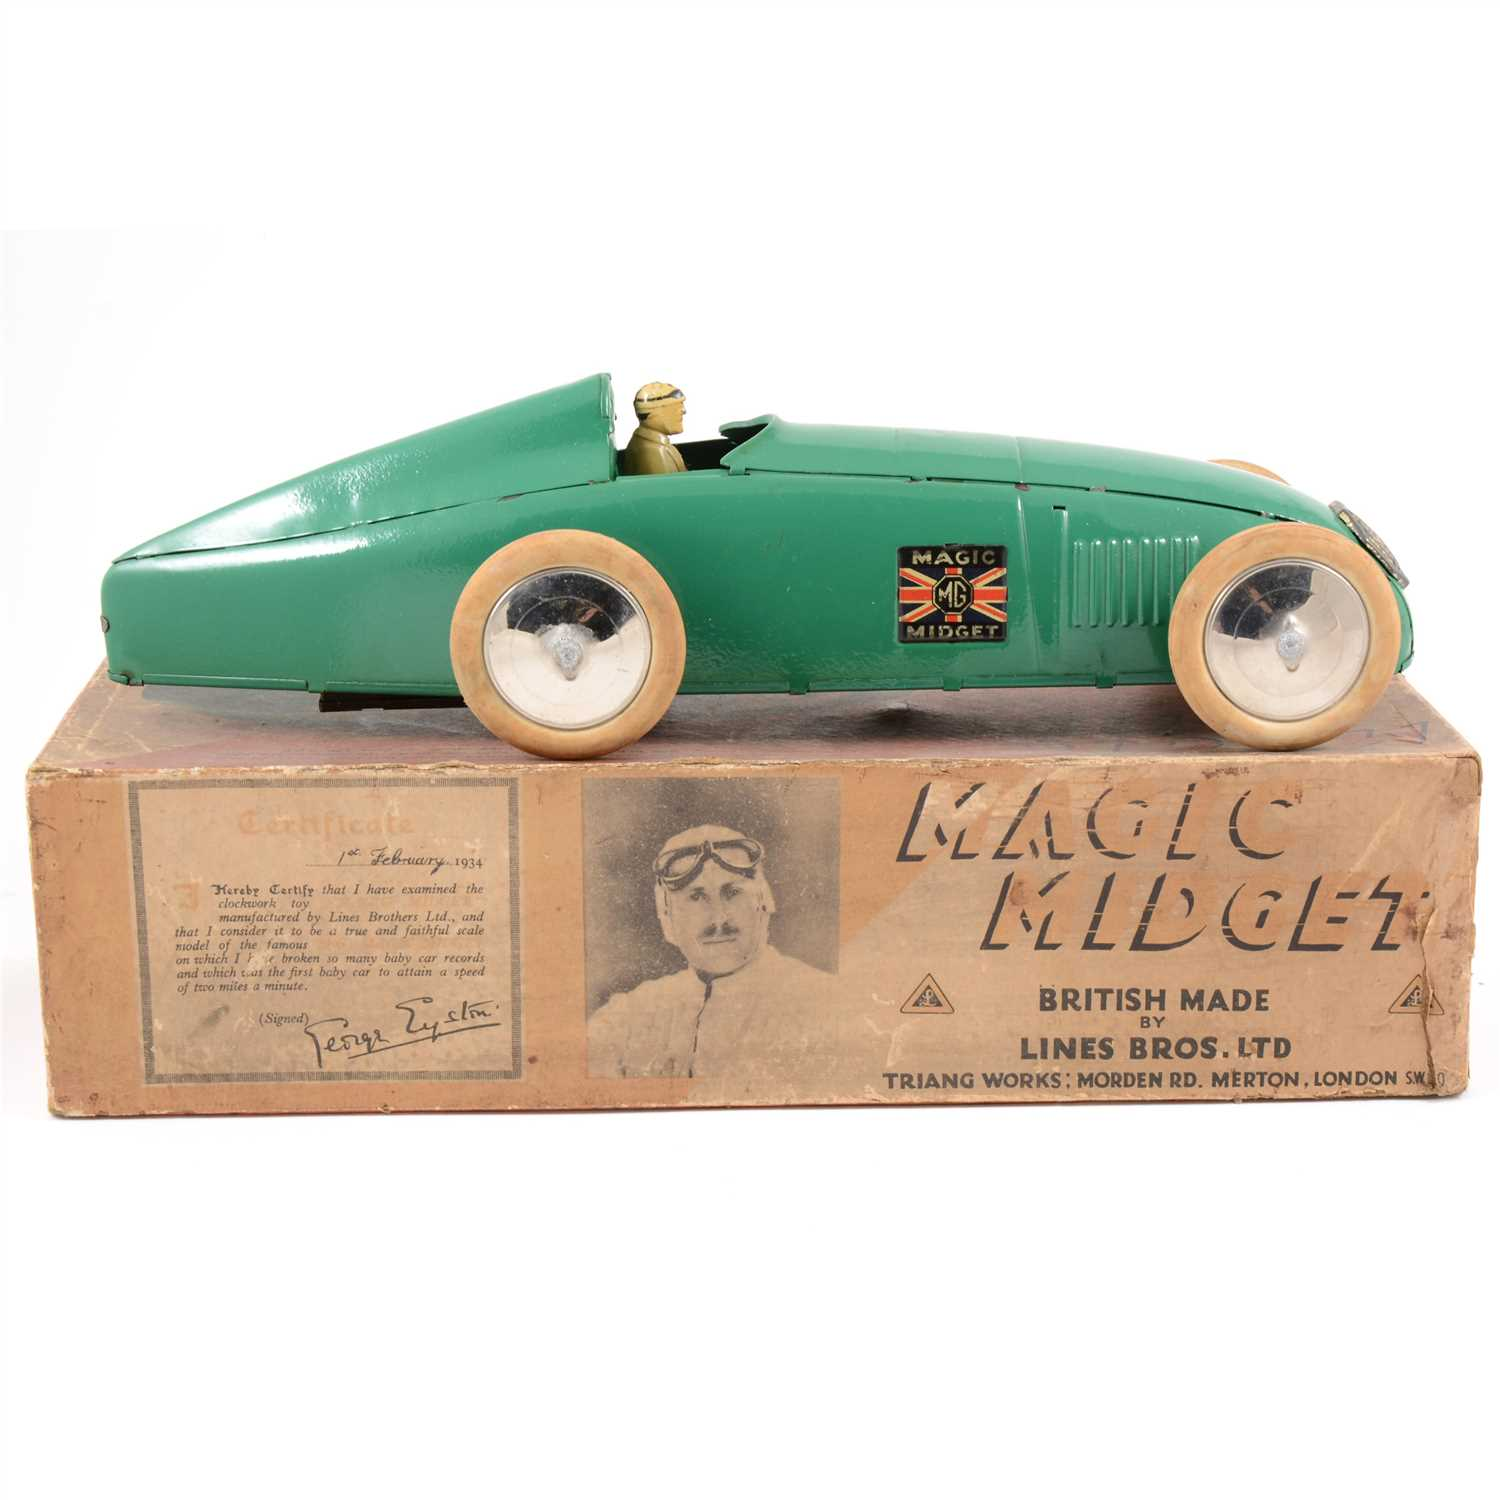 Lot 68-An impressive example of the Tri-ang Magic Midget record breaking car, boxed.